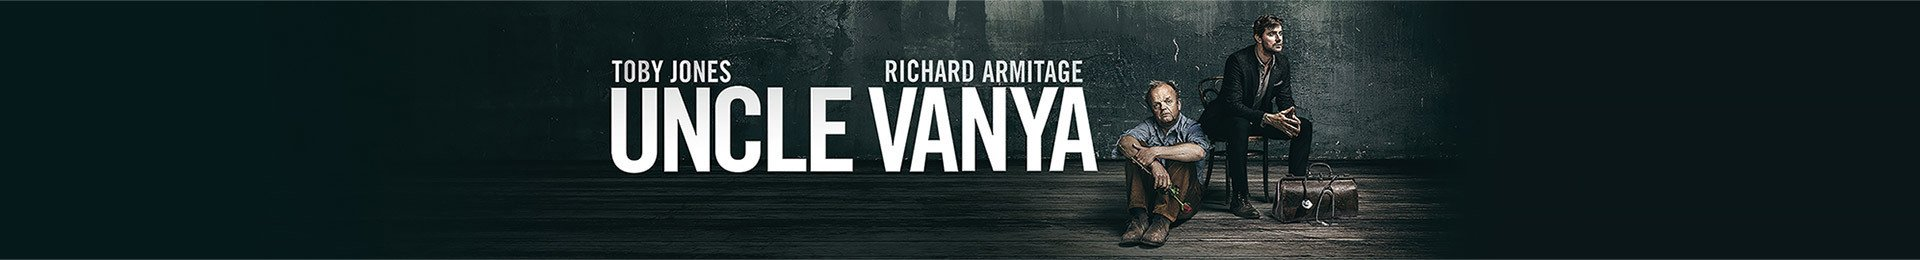 Uncle Vanya banner image